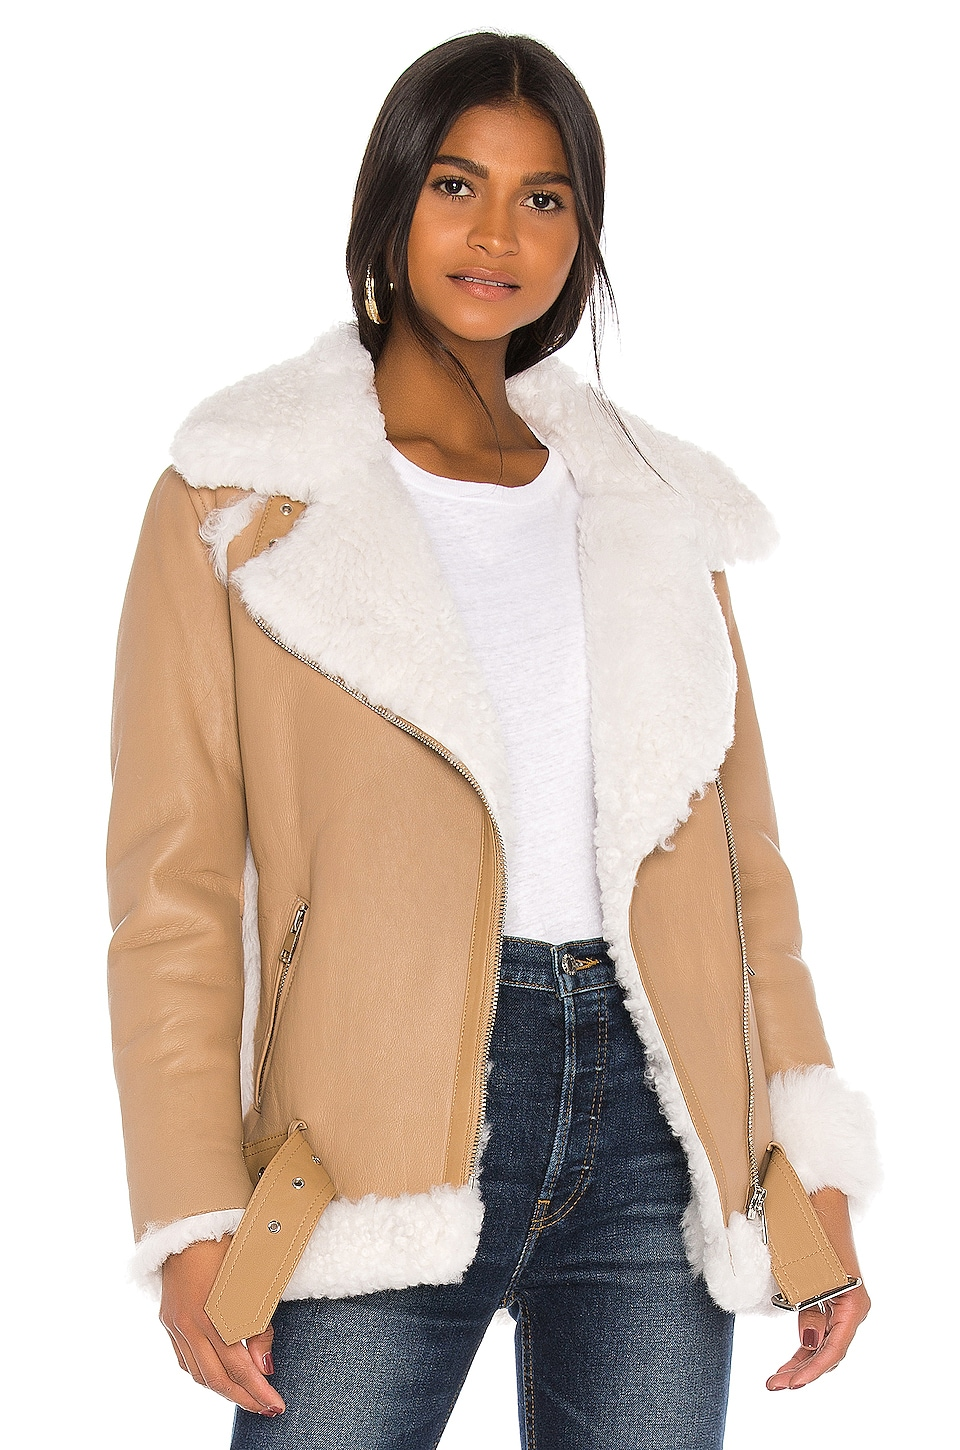 Yves Salomon - Meteo Lamb Hair Jacket in Ivoire & Beige